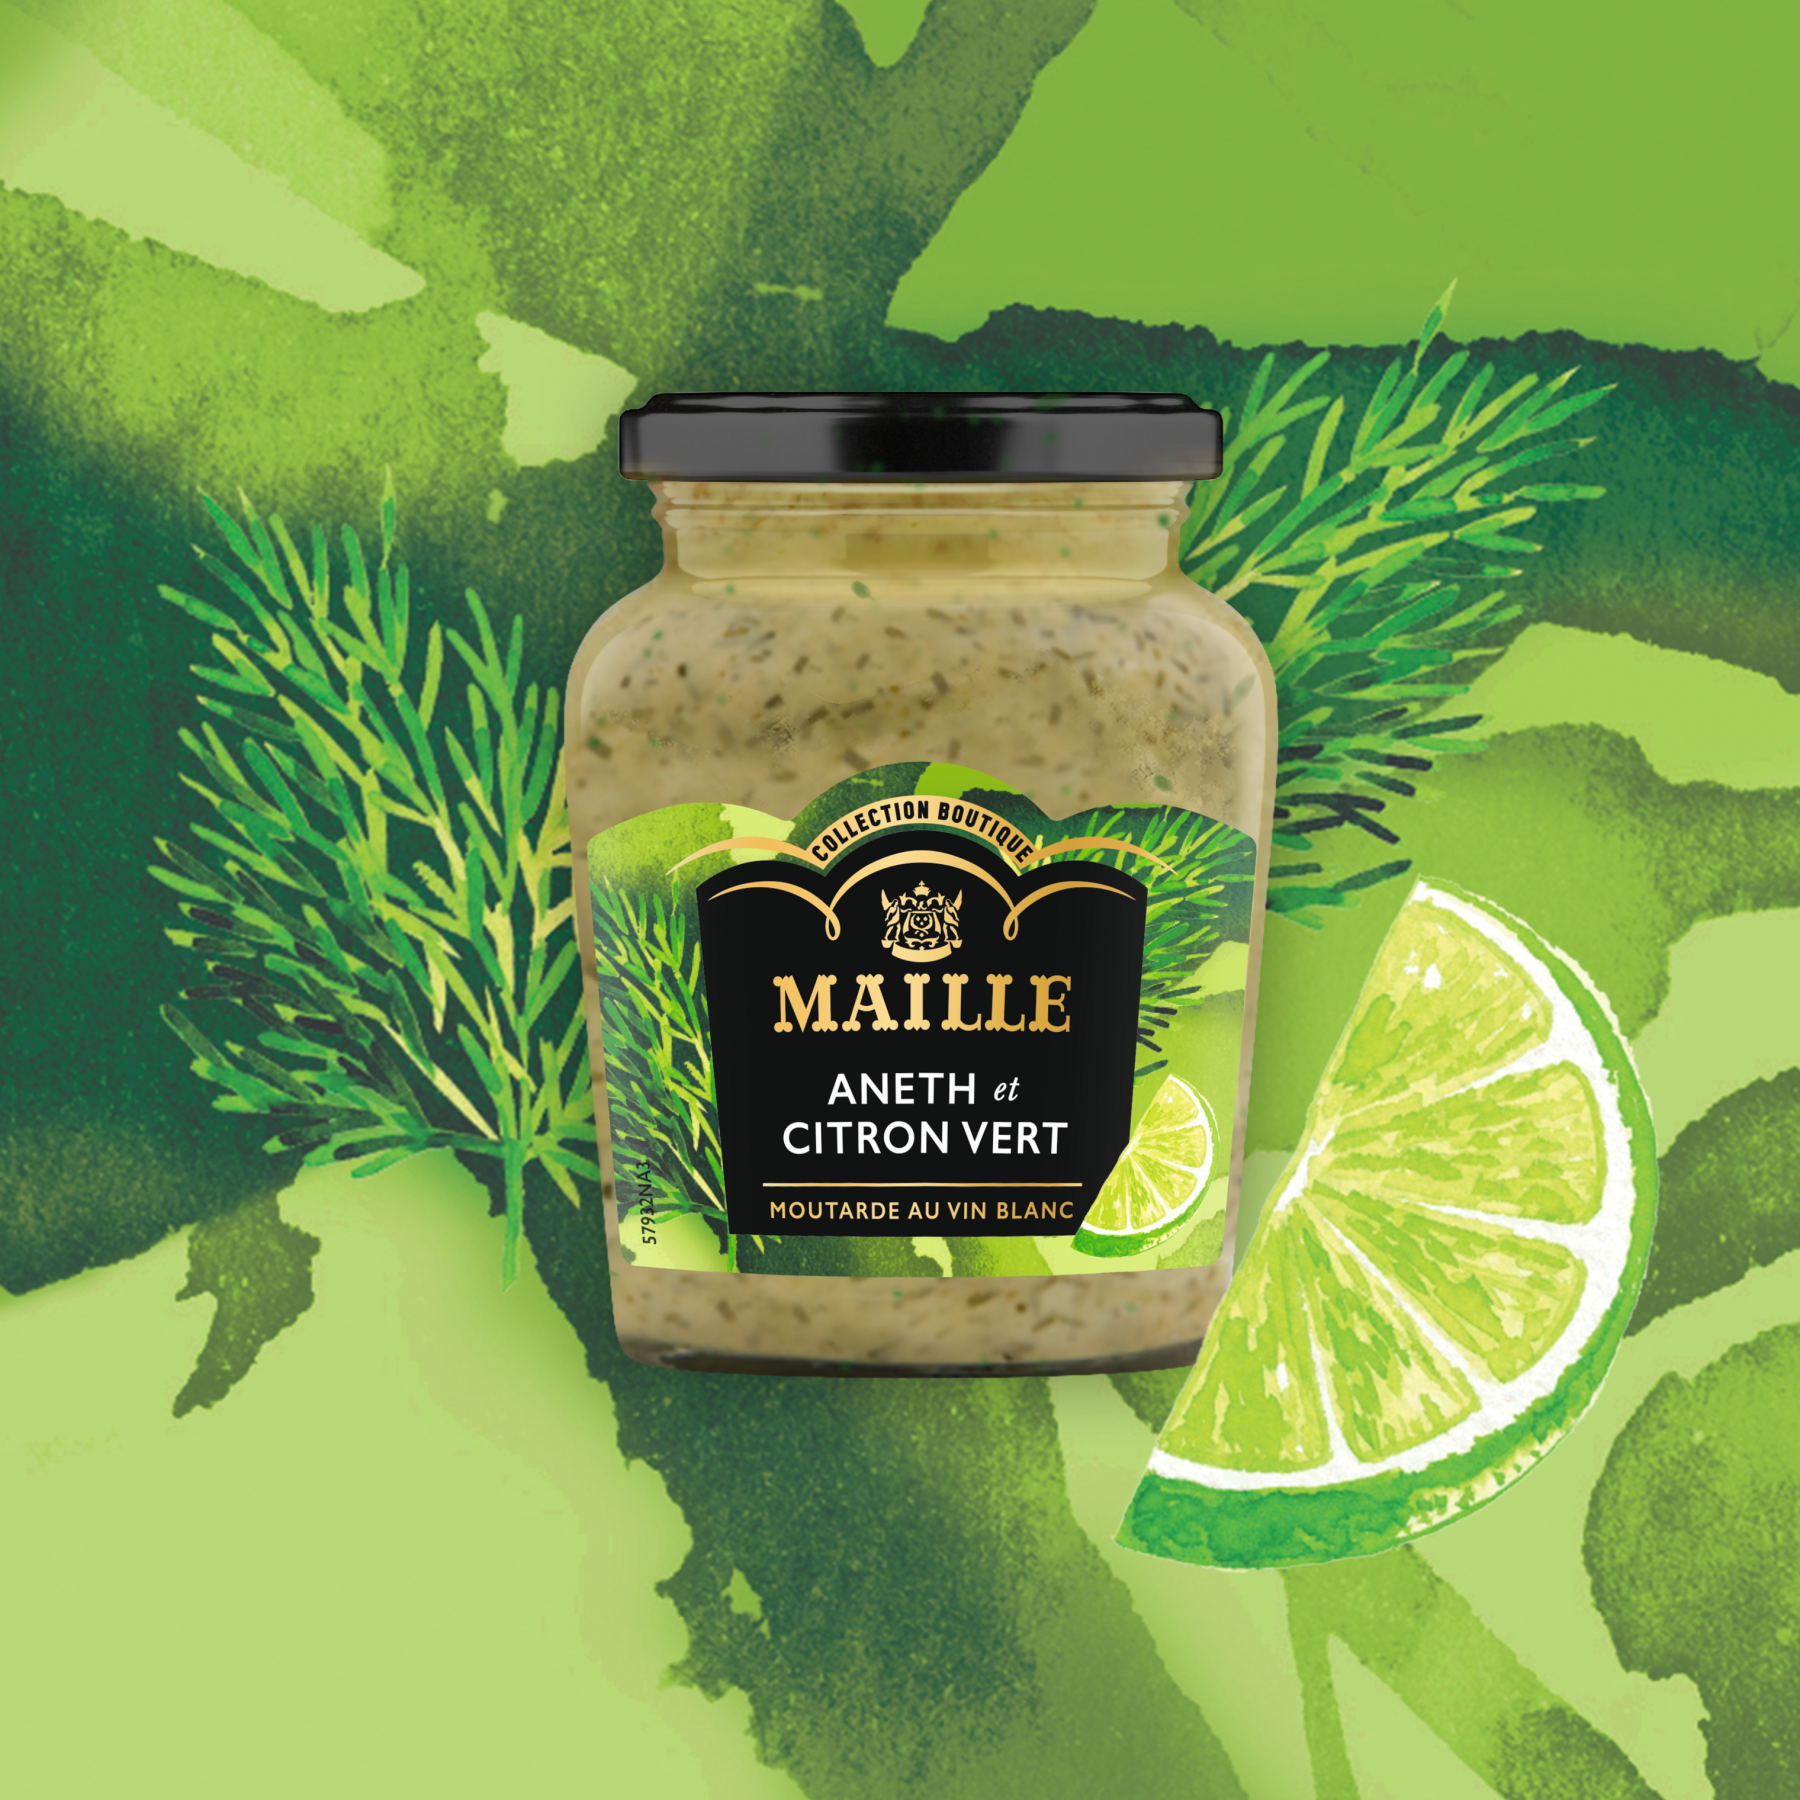 Maille - Moutarde au vin blanc, aneth et citron vert, 108 g, new visual